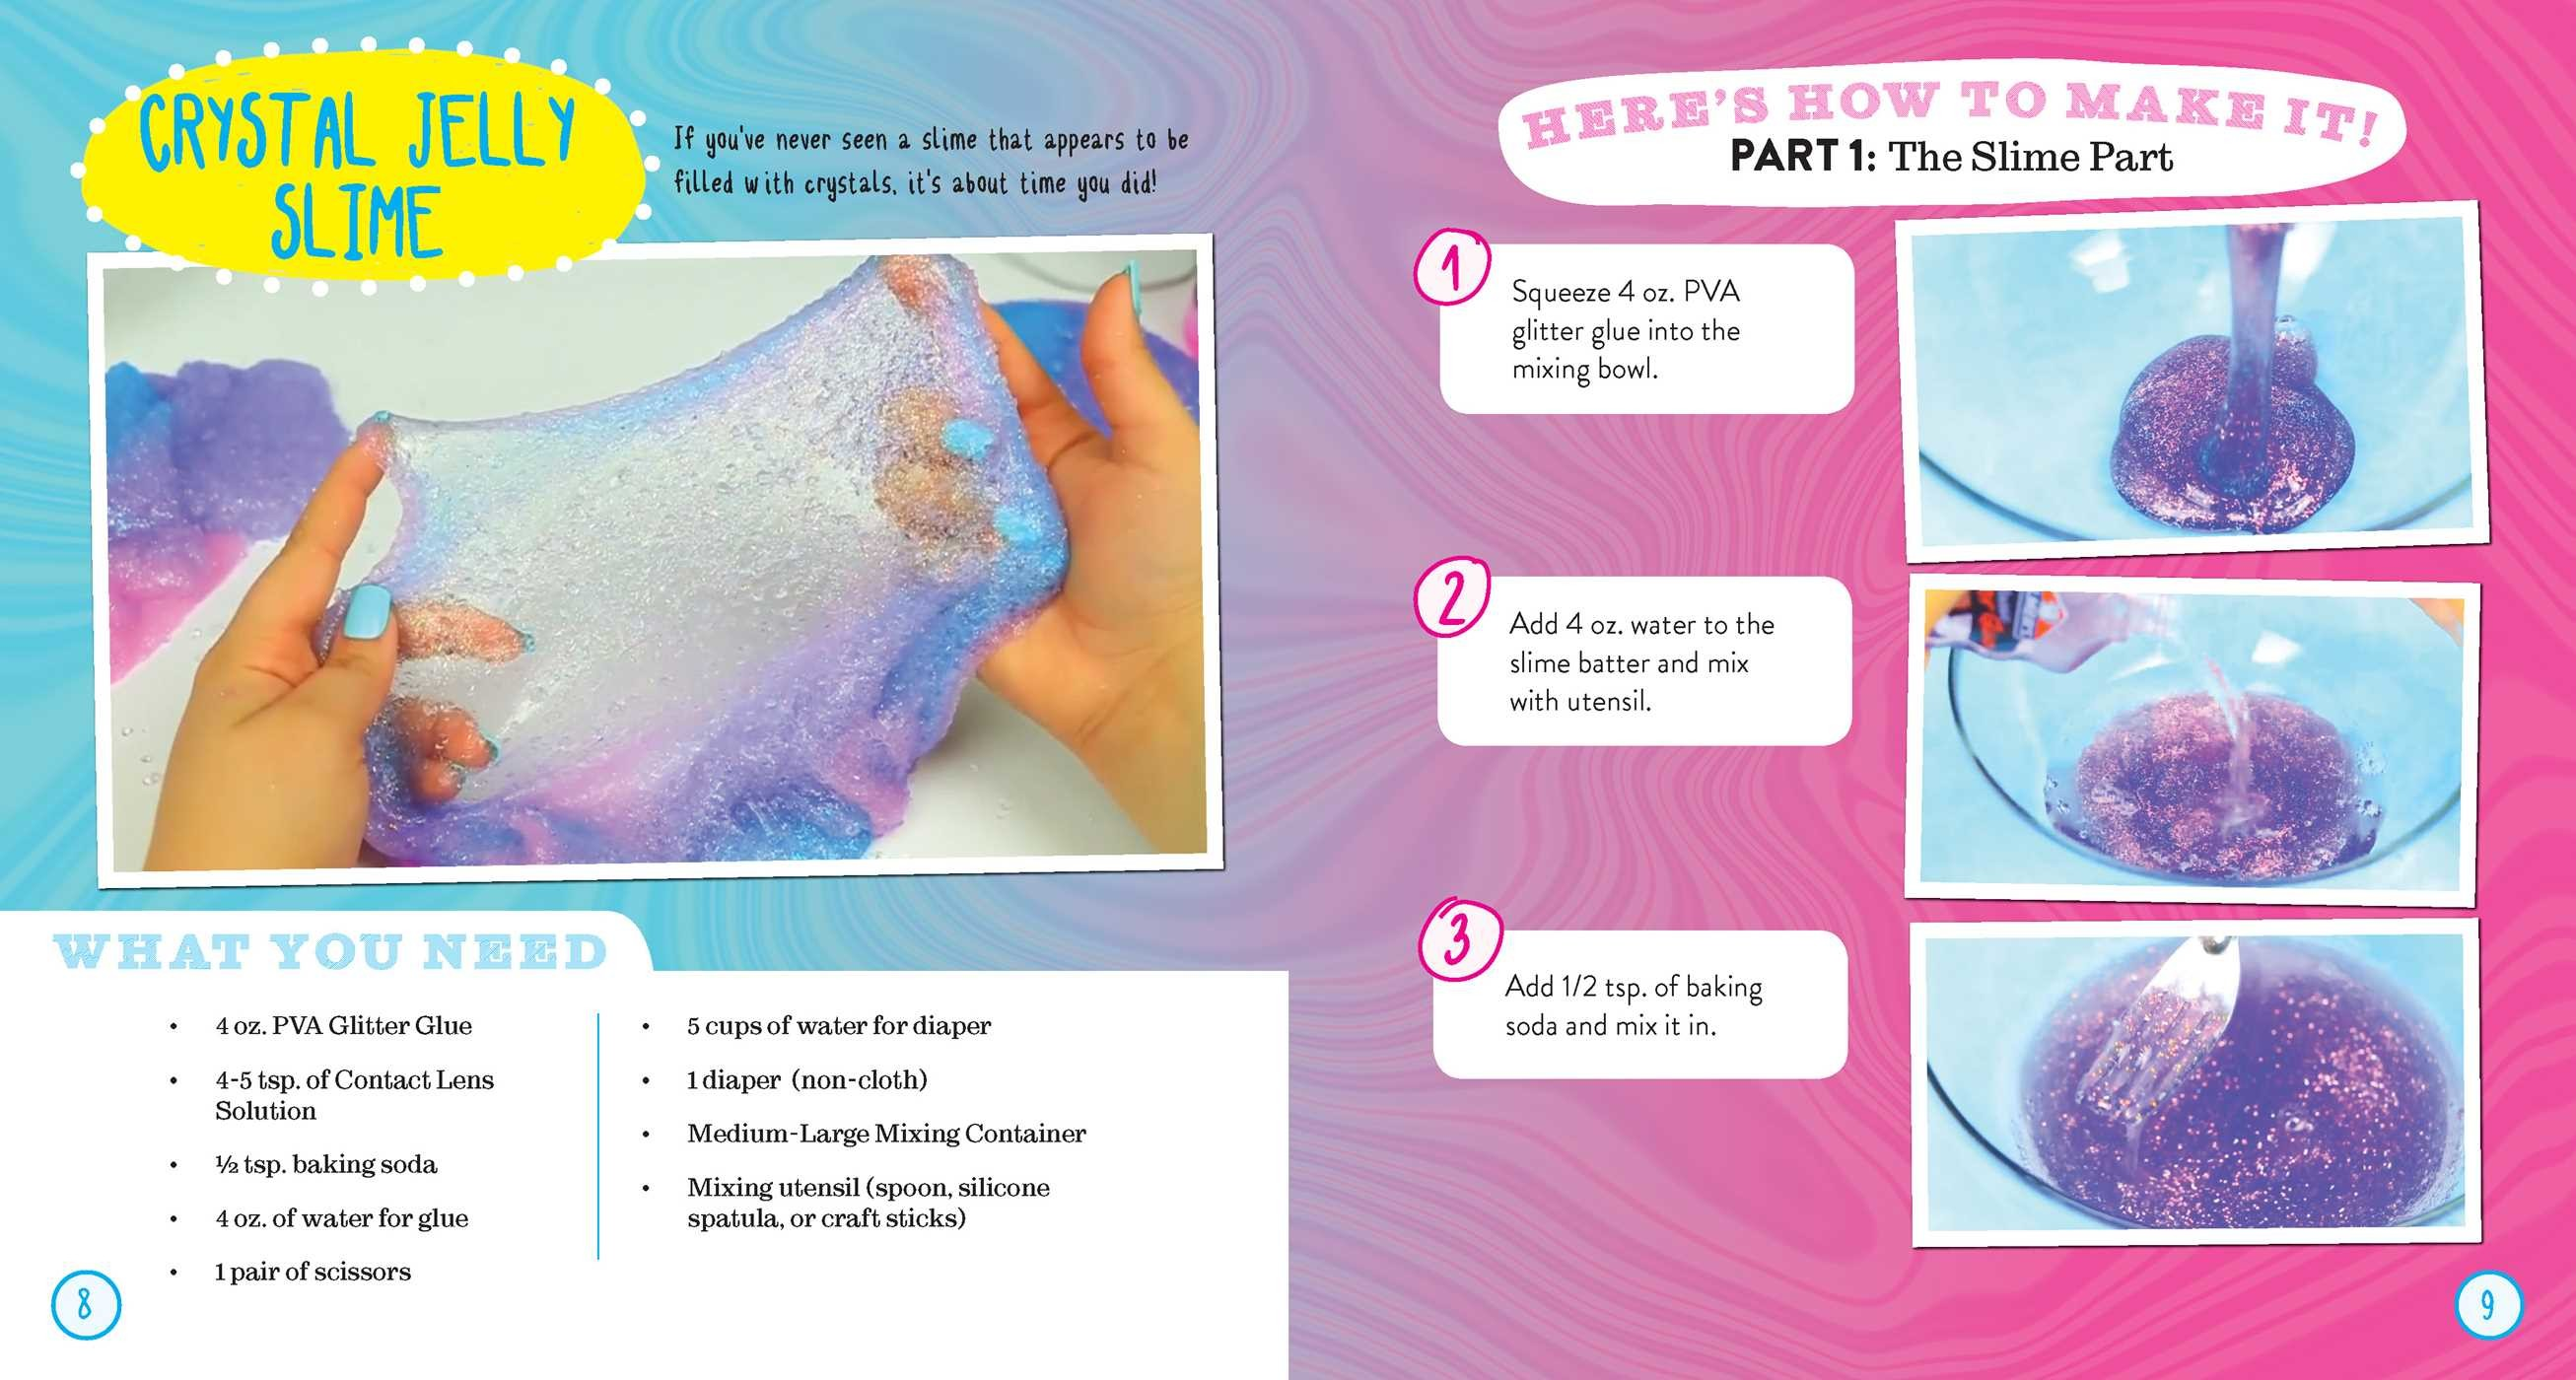 Karina garcias diy slime book by karina garcia official karina garcias diy slime 978149980660101 ccuart Gallery